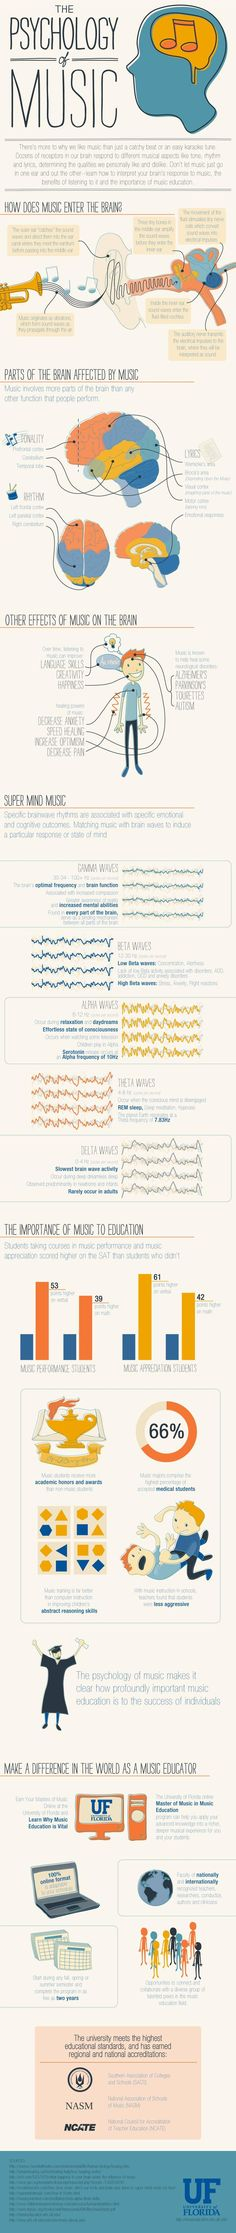 The Psychology of Music  U need alpha or theta waves music. BTW u never told did u get ur exam scores